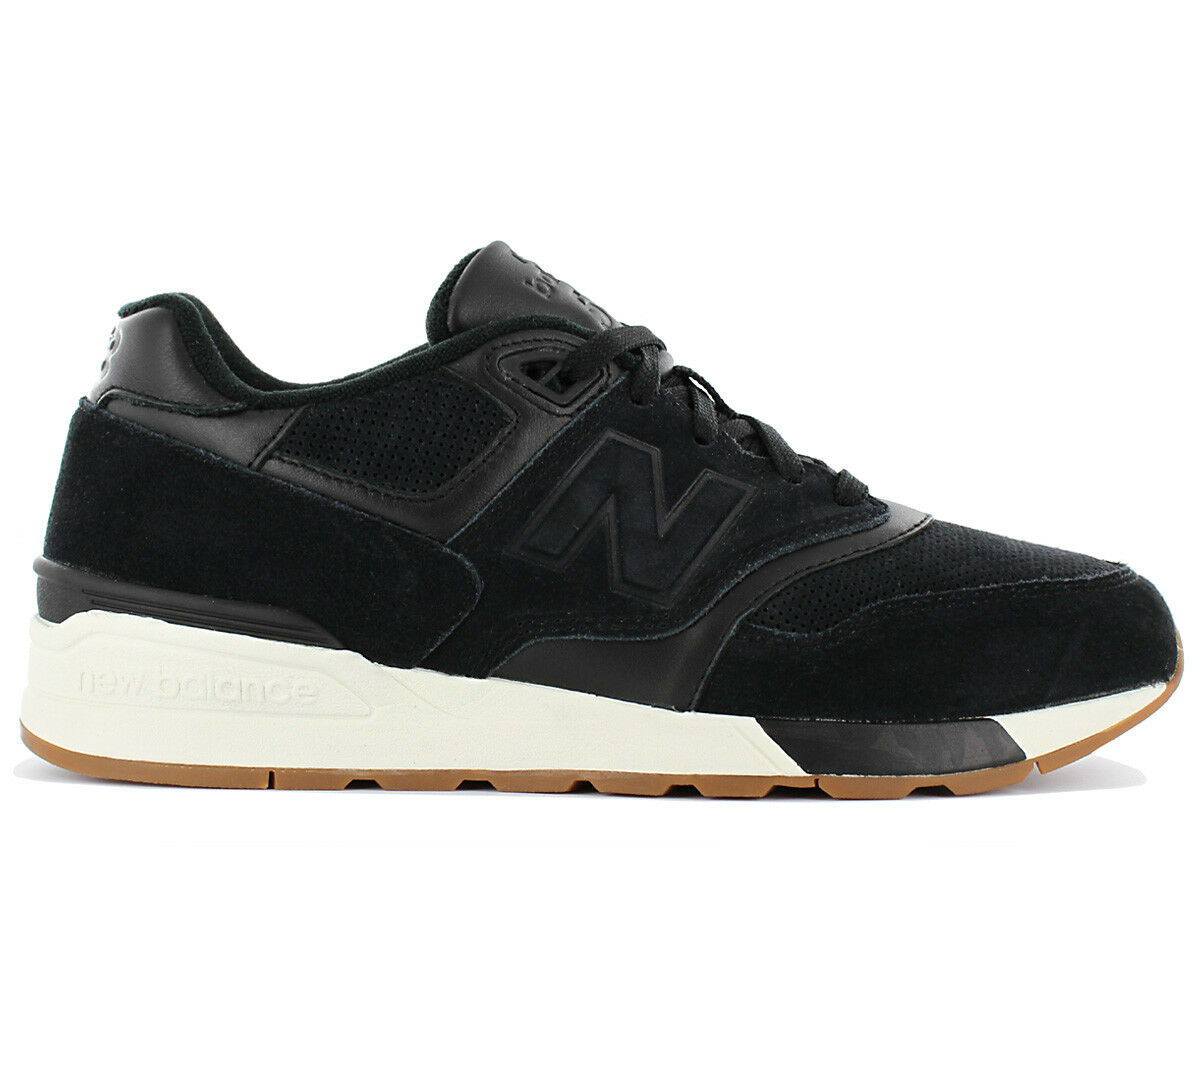 New Balance 597 Classics Shoes Men's Leather Sneakers Black ml597skg Trainers